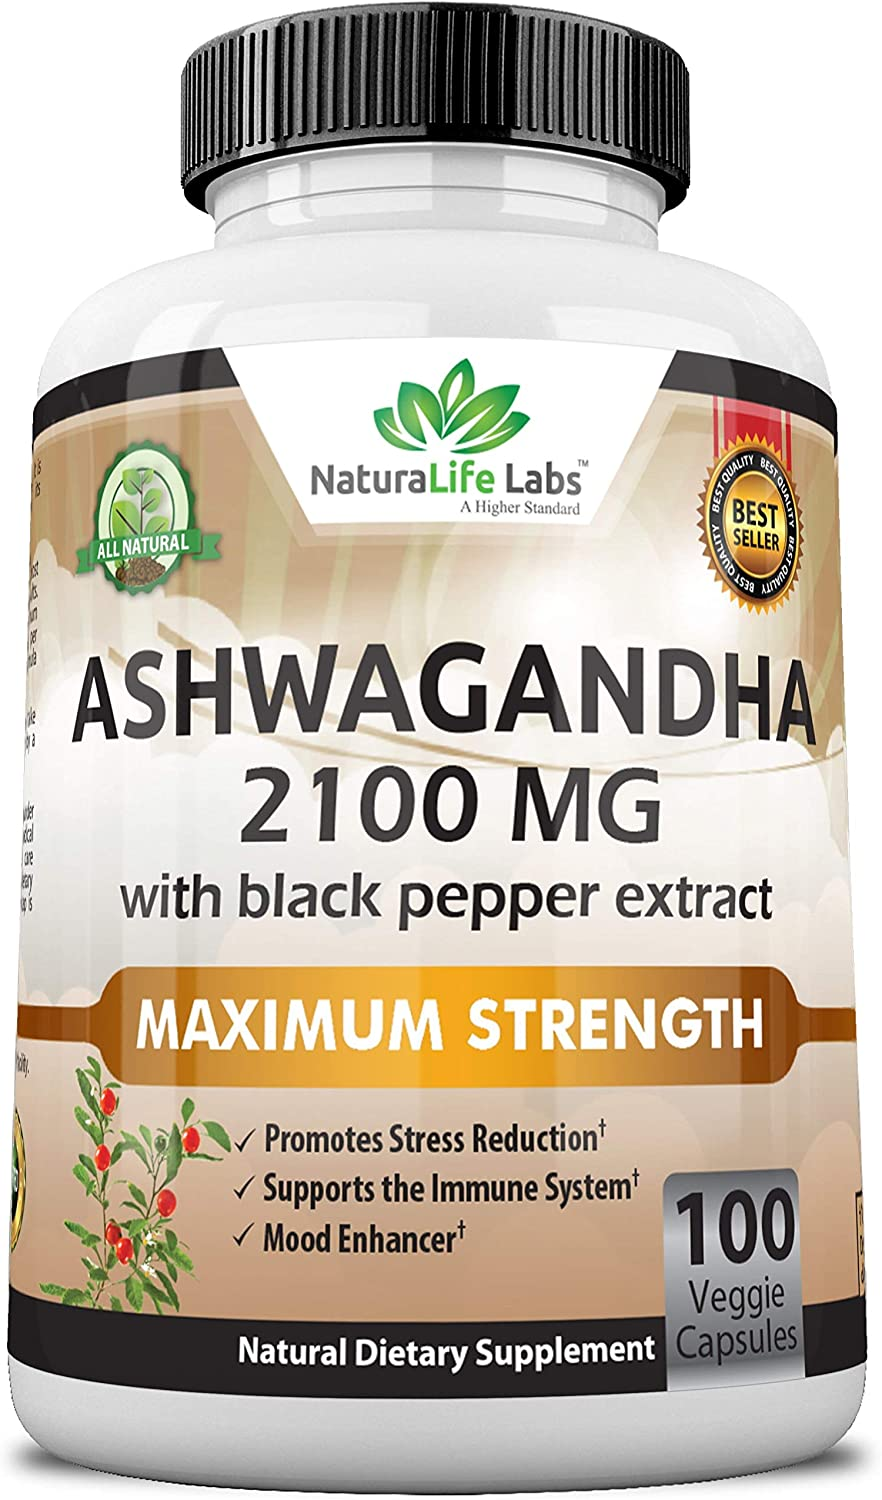 Organic Ashwagandha 2,100 mg - 100 Vegan Capsules Pure Organic Ashwagandha Powder and Root Extract - Natural Anxiety Relief, Mood Enhancer, Immune & Thyroid Support, Anti Anxiety: Health & Personal Care